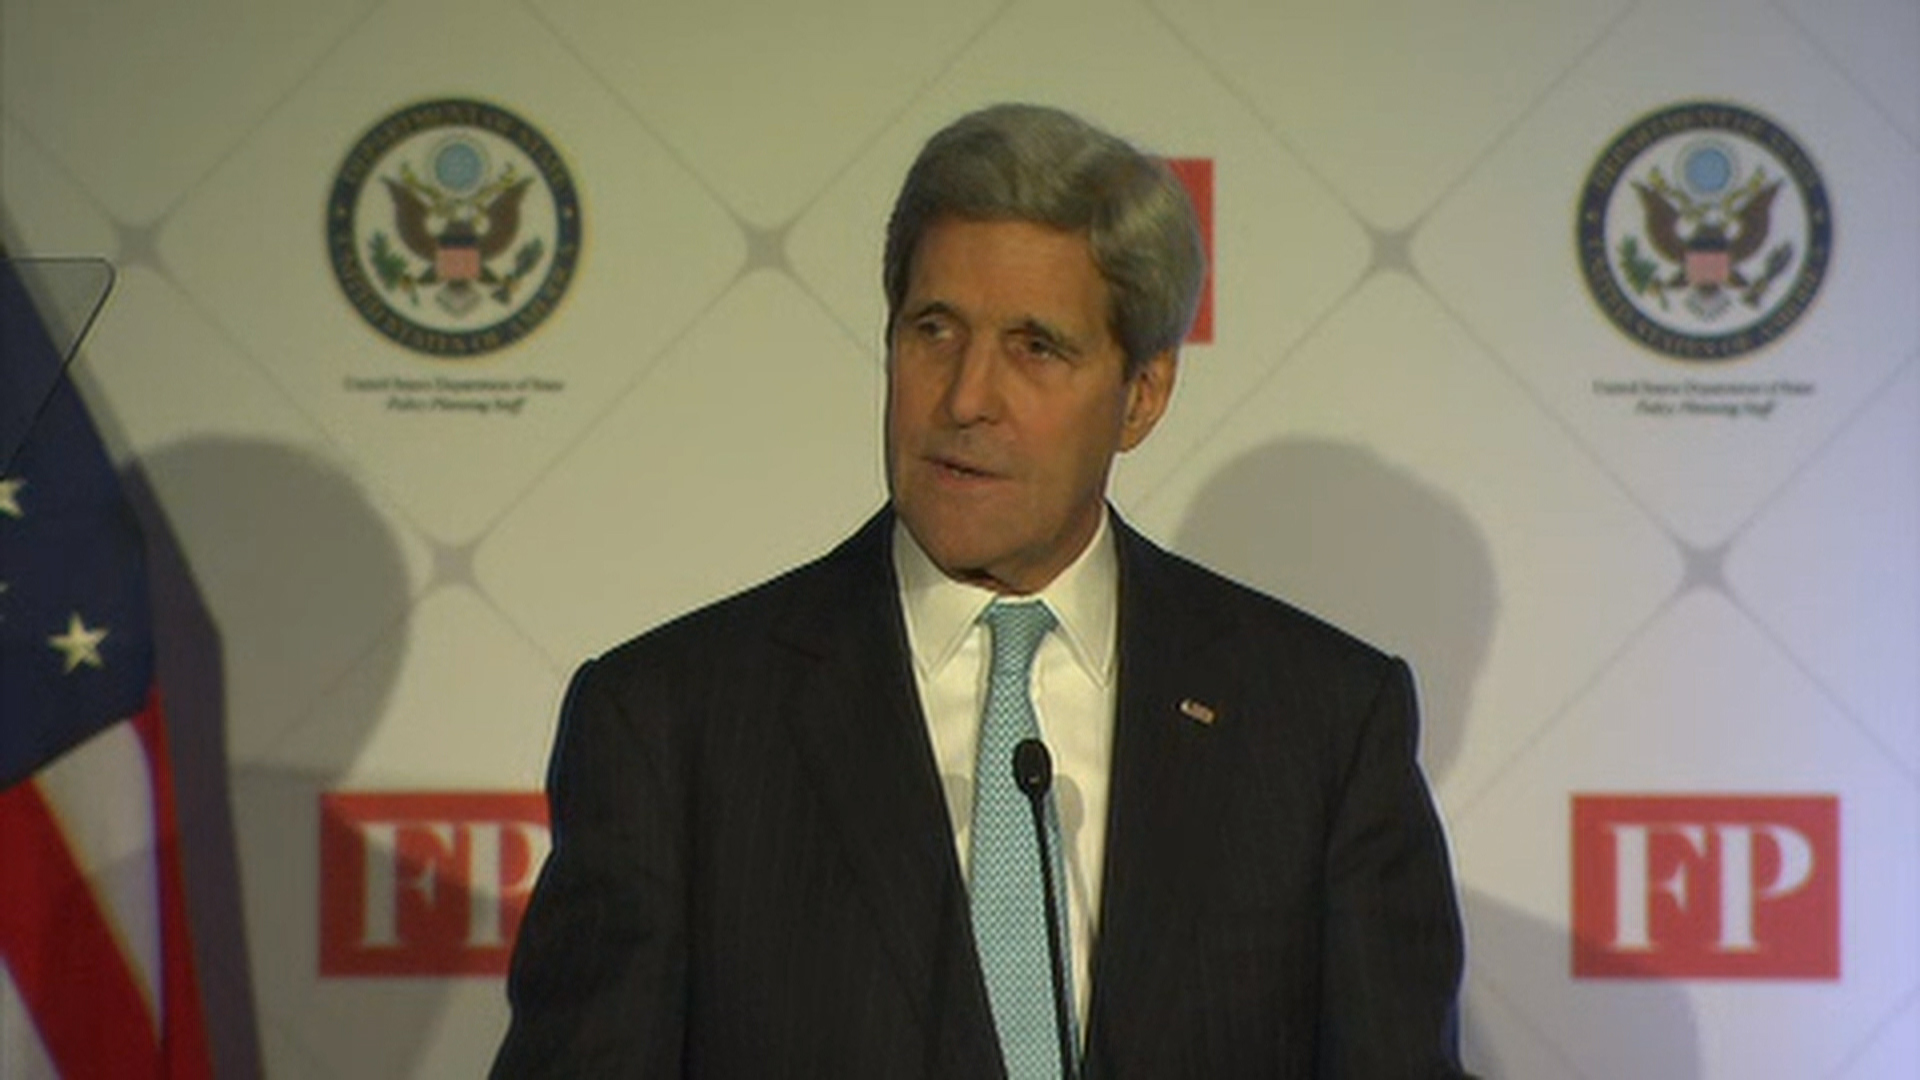 Kerry: The US is 'not intimidated' by ISIS